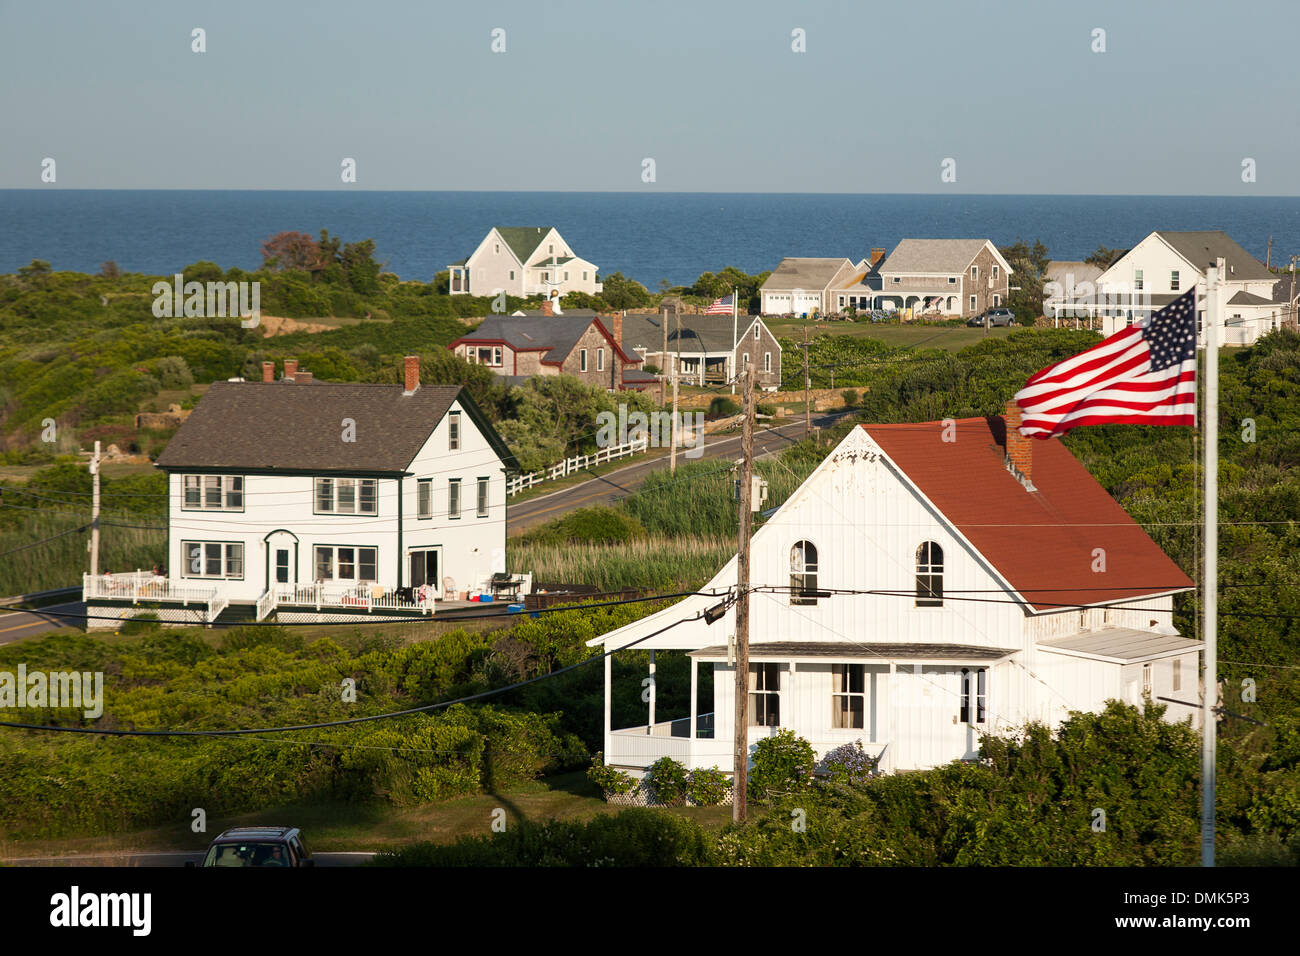 A view across the houses of Block Island, a resort island close to the coast of Rhode Island, a popular vacation place - Stock Image